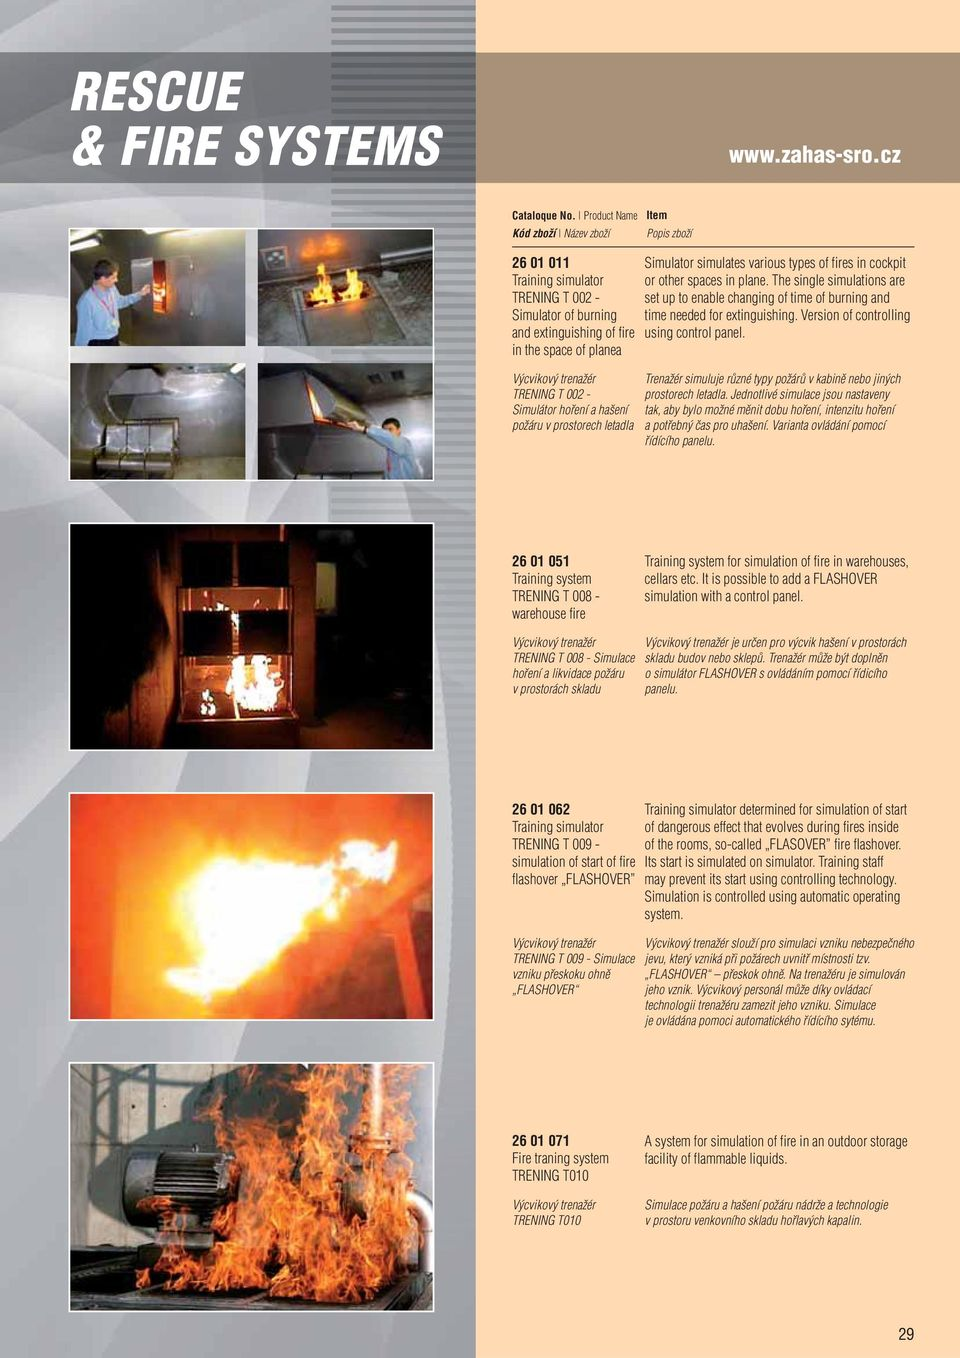 letadla Simulator simulates various types of fires in cockpit or other spaces in plane. The single simulations are set up to enable changing of time of burning and time needed for extinguishing.